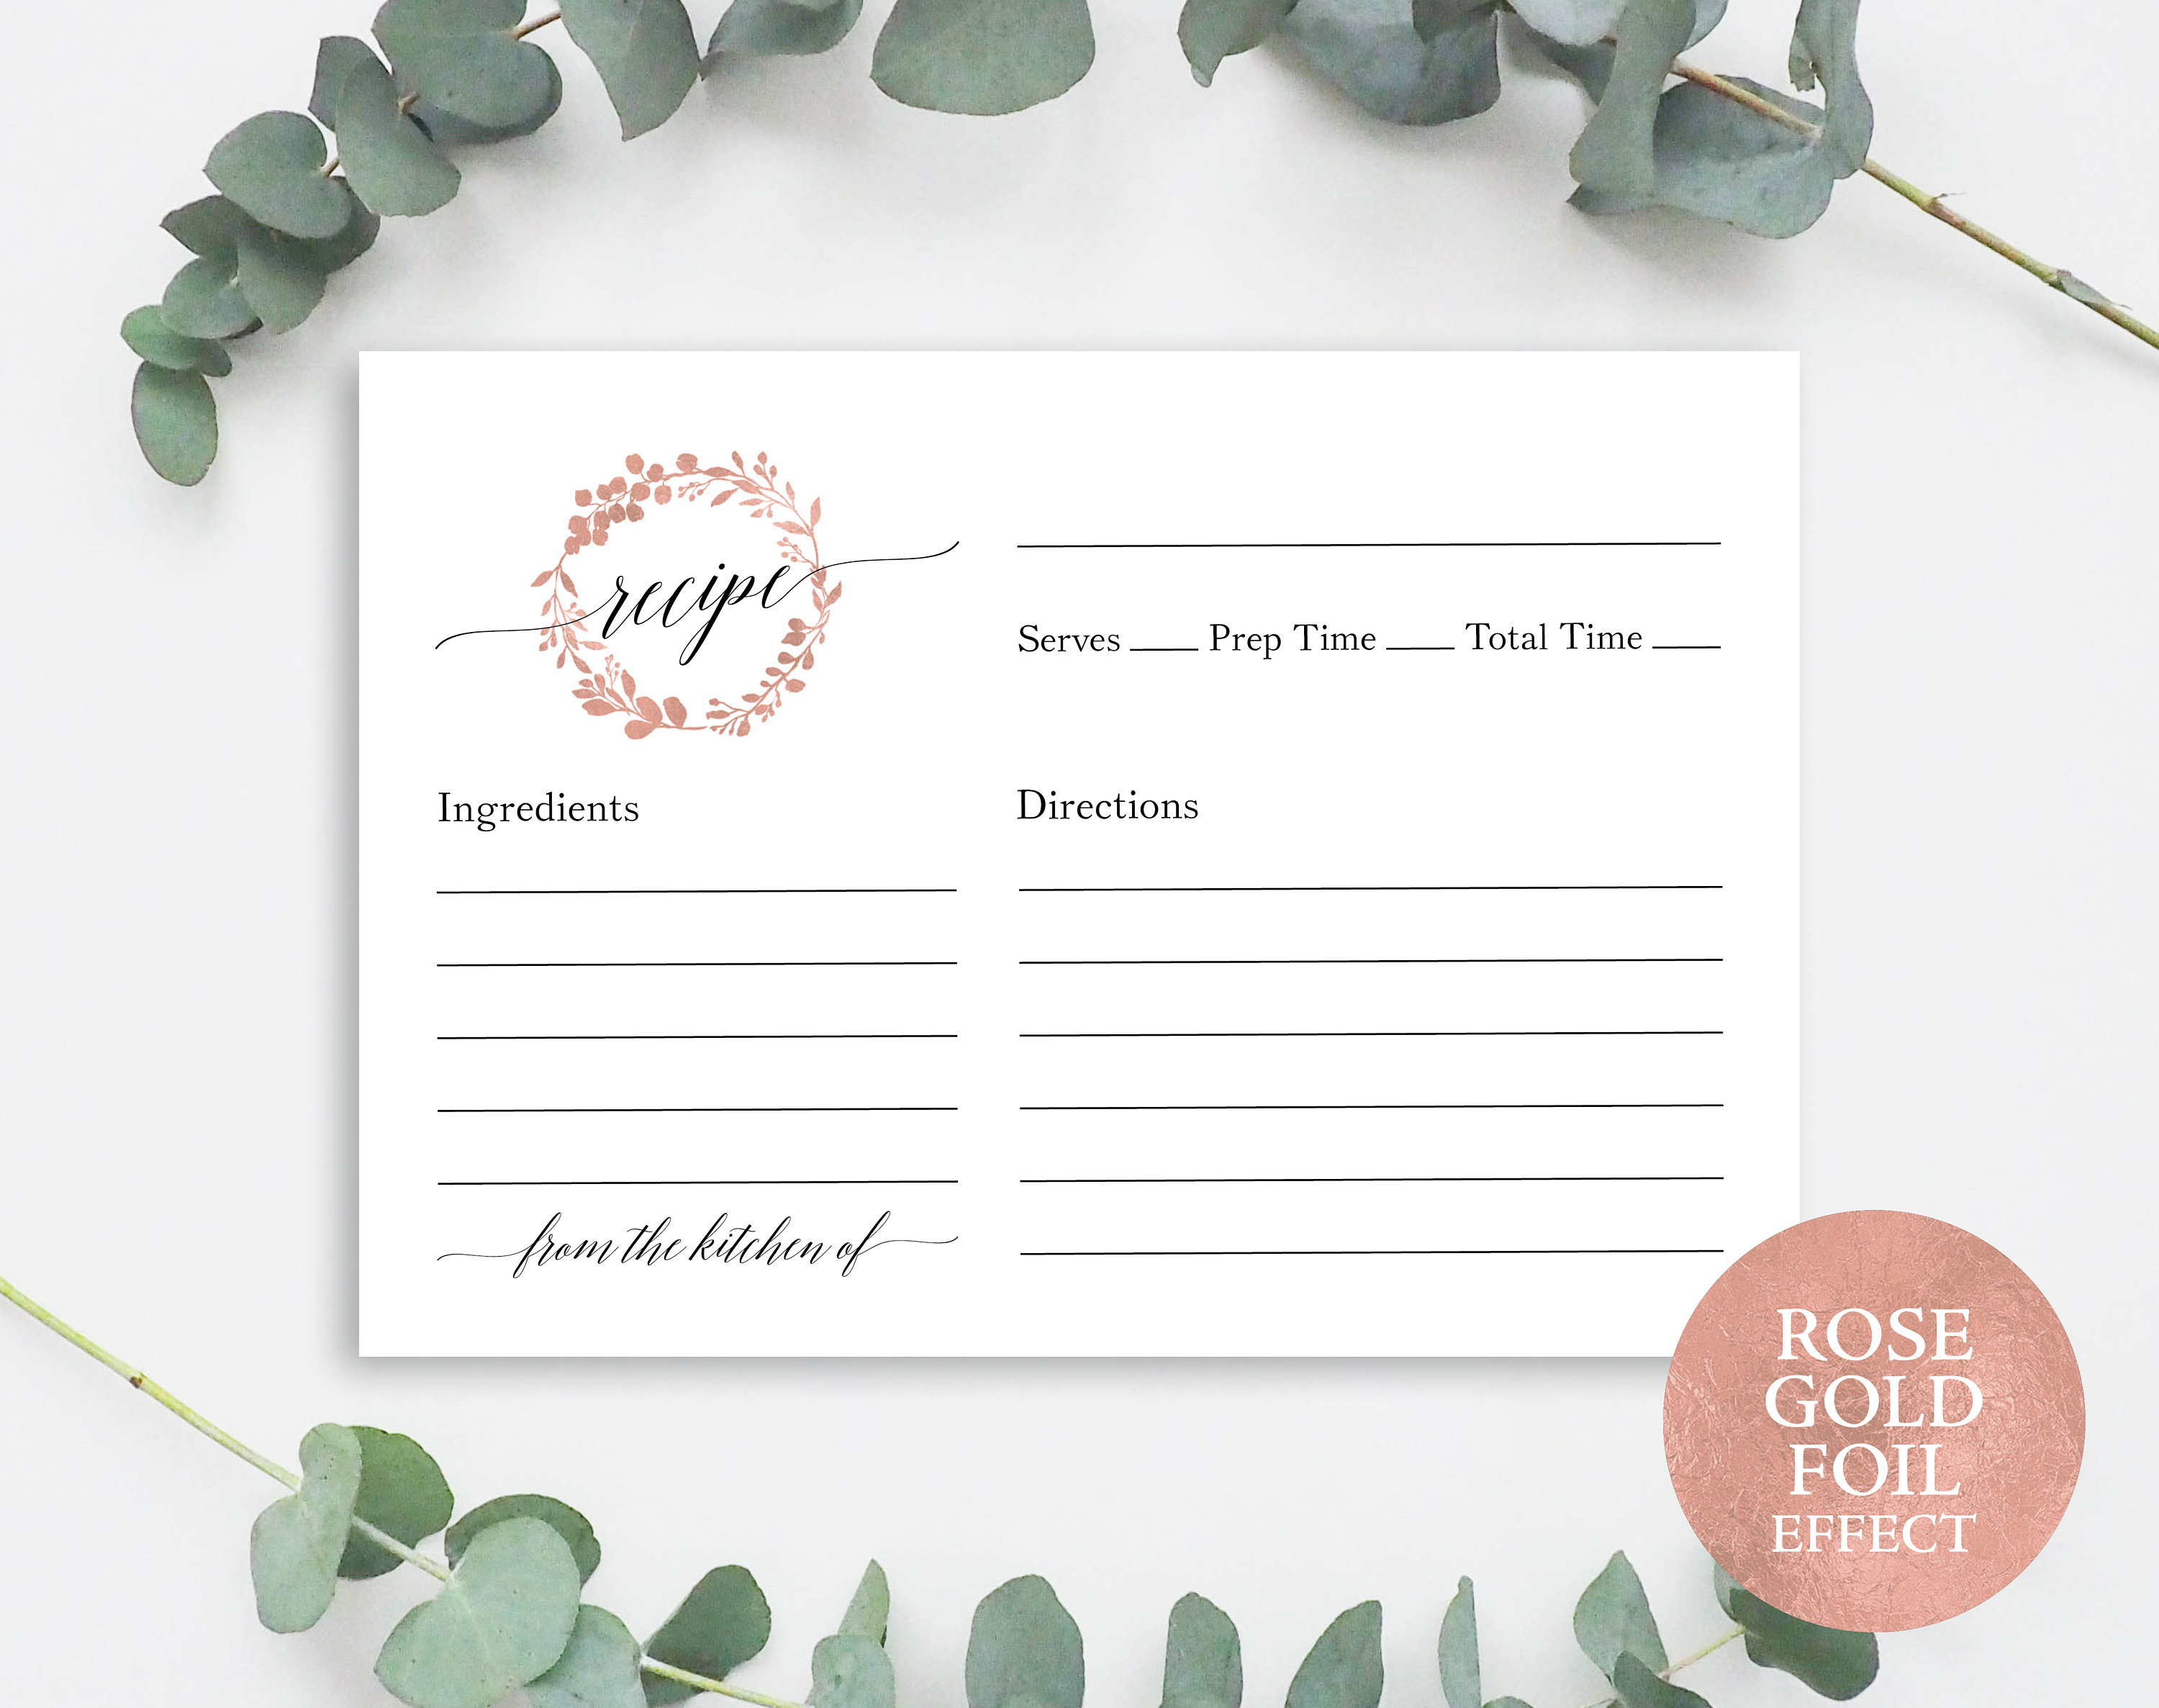 photograph relating to Free Printable Recipe Cards for Bridal Shower identified as Rose Gold Recipe Card Template, Printable Recipe Card